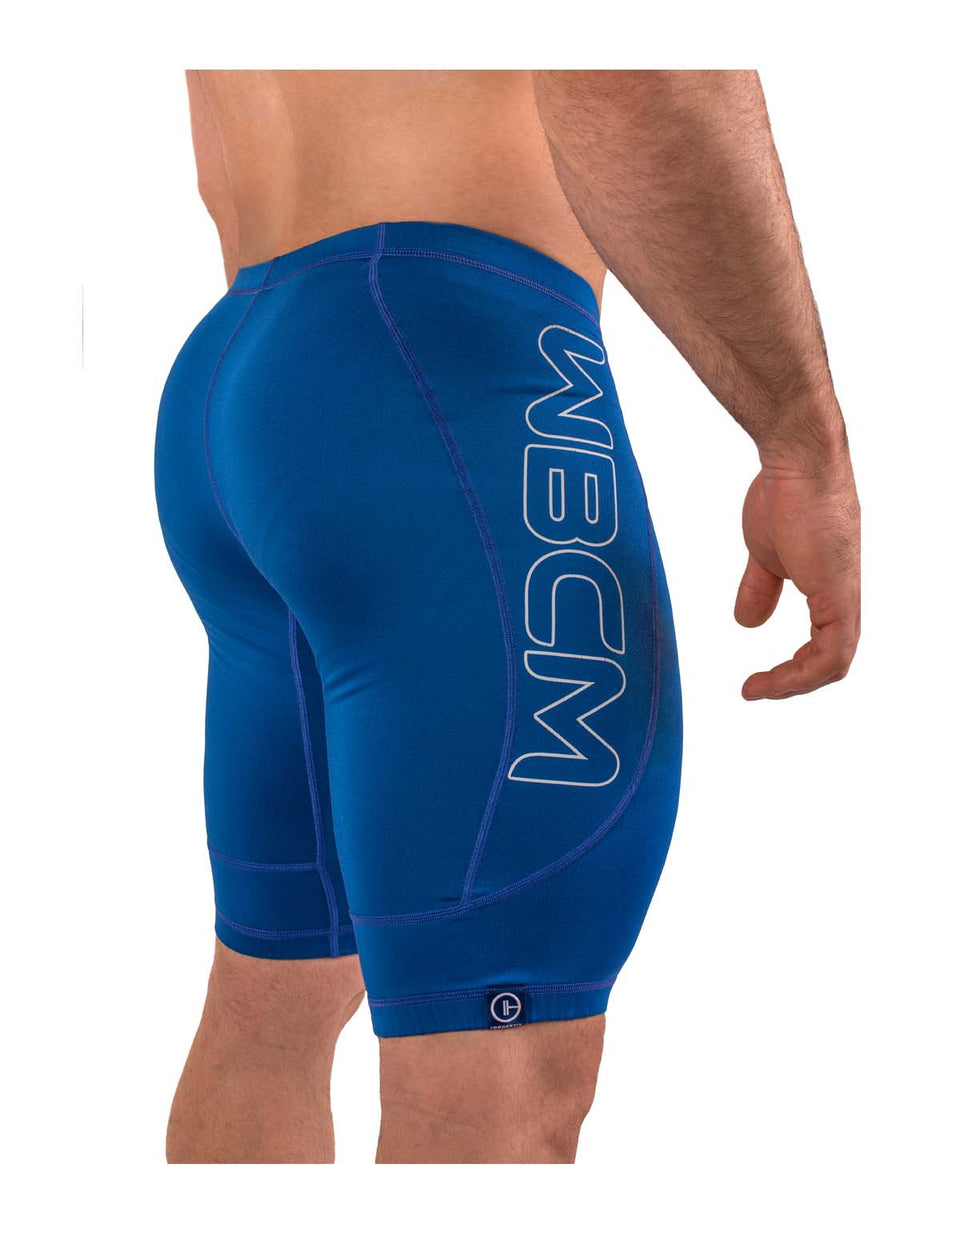 Warm Body Cold Mind weightlifting compression shorts